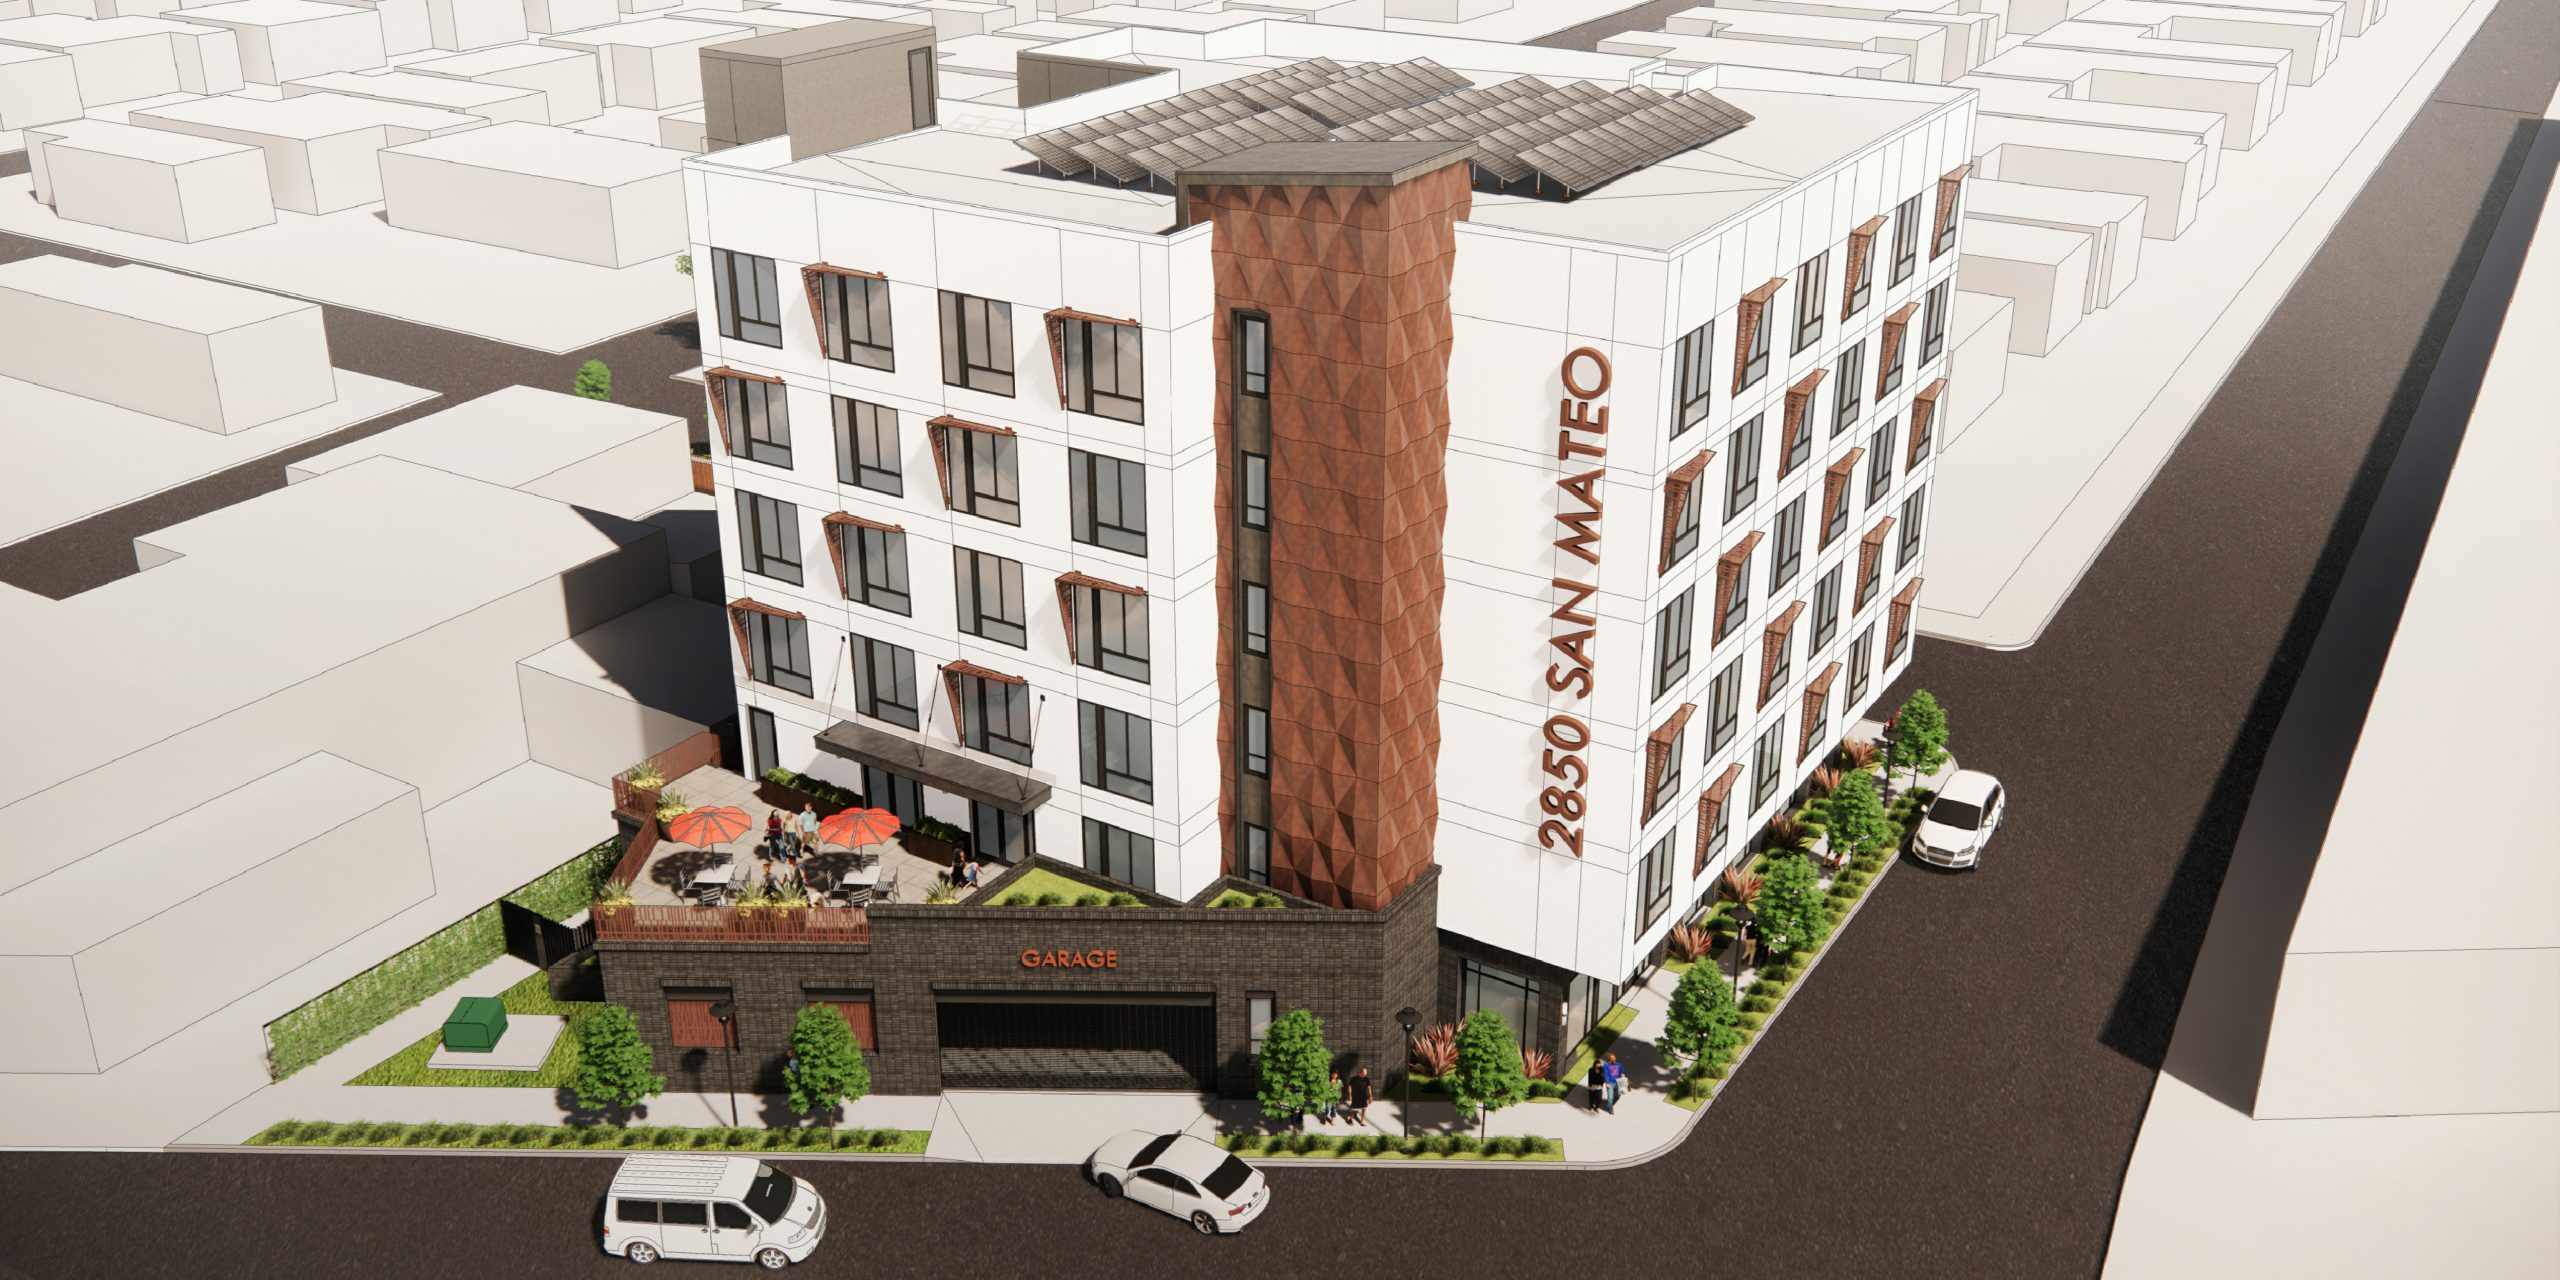 2850-SAN MATEO-CYCLE 1-ARCH-ARCHITECTURAL SUBMITTAL-13